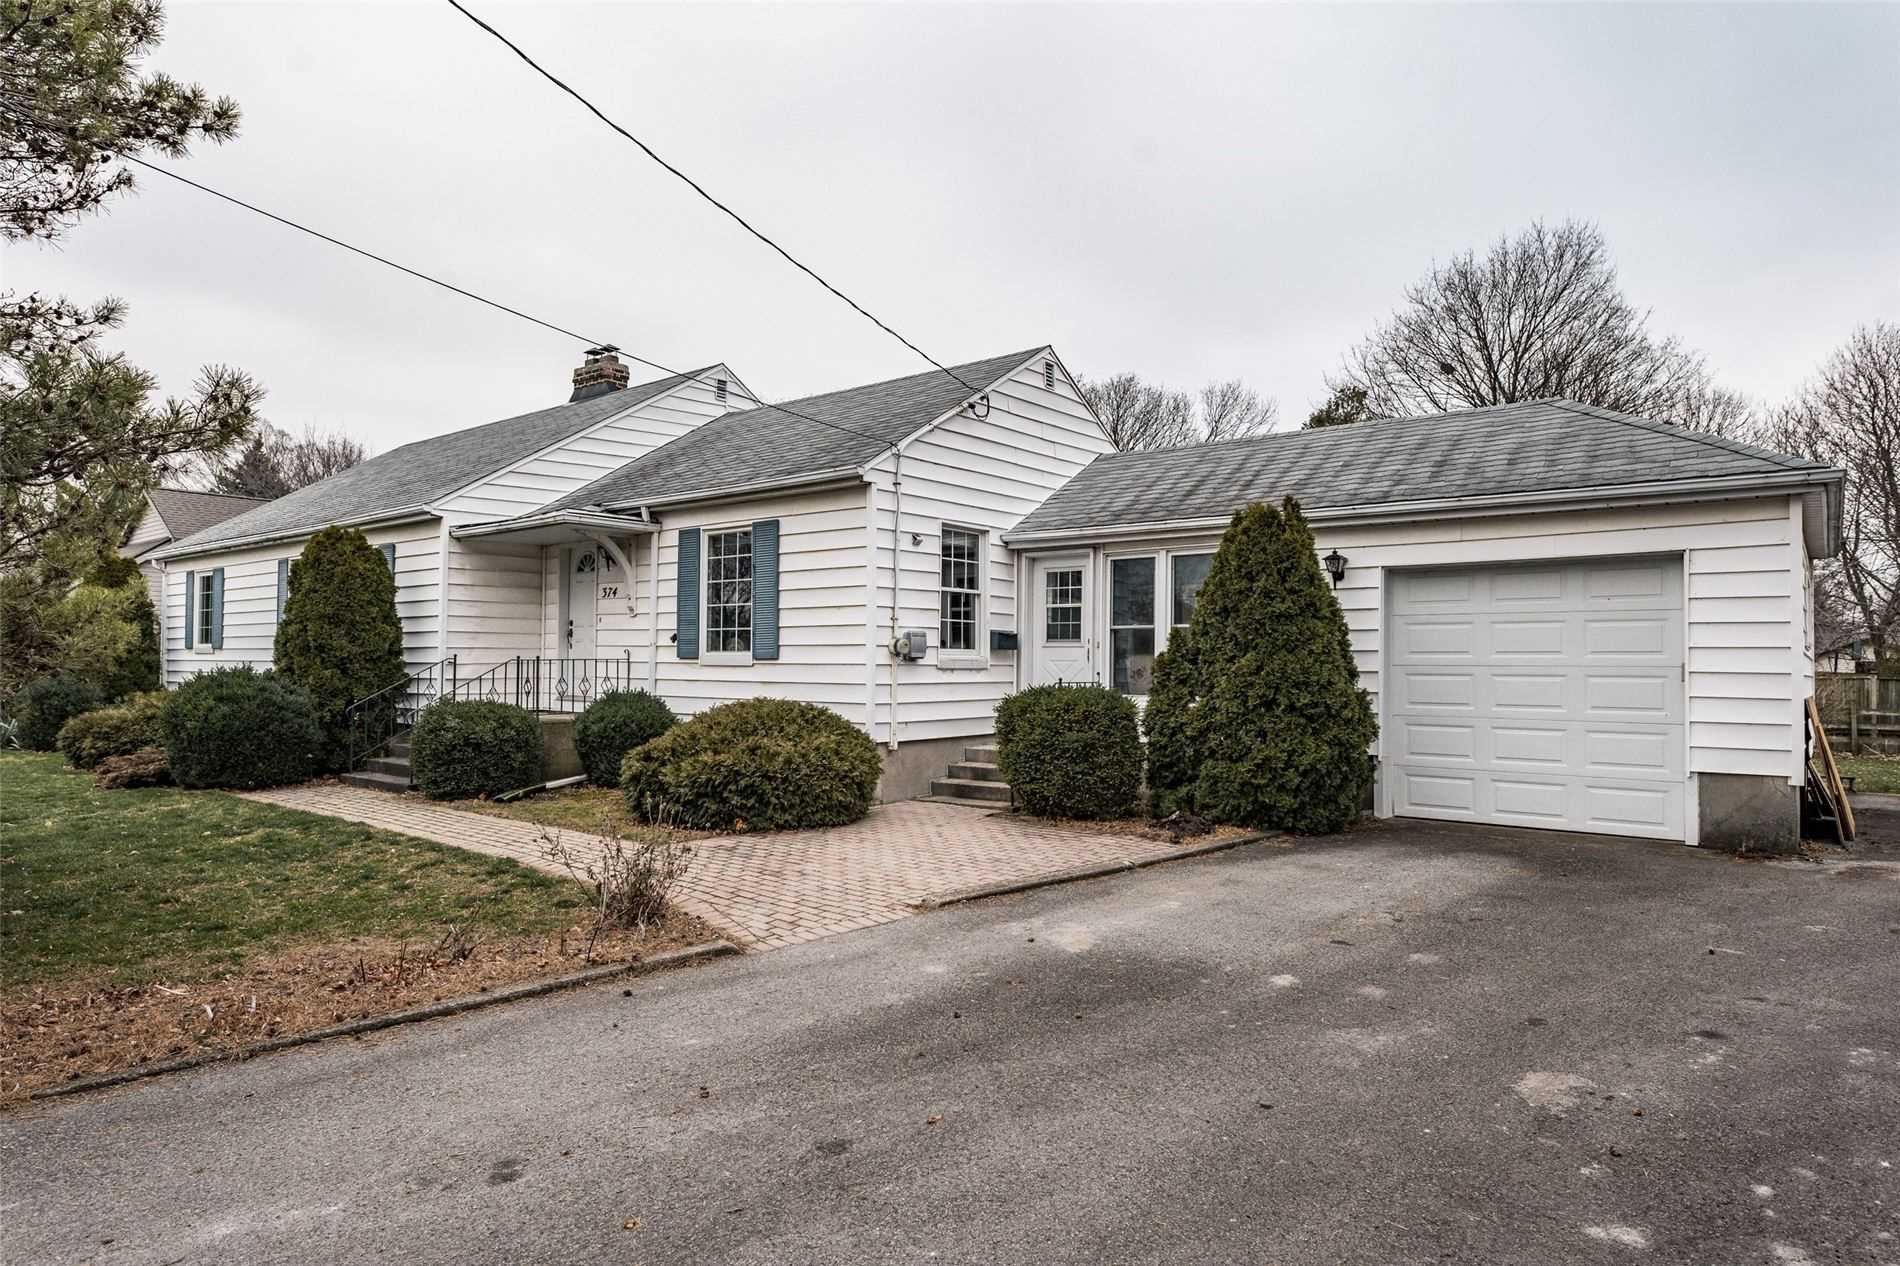 pictures of house for sale MLS: X5087632 located at 374 Linwell Rd, St. Catharines L2M2P2